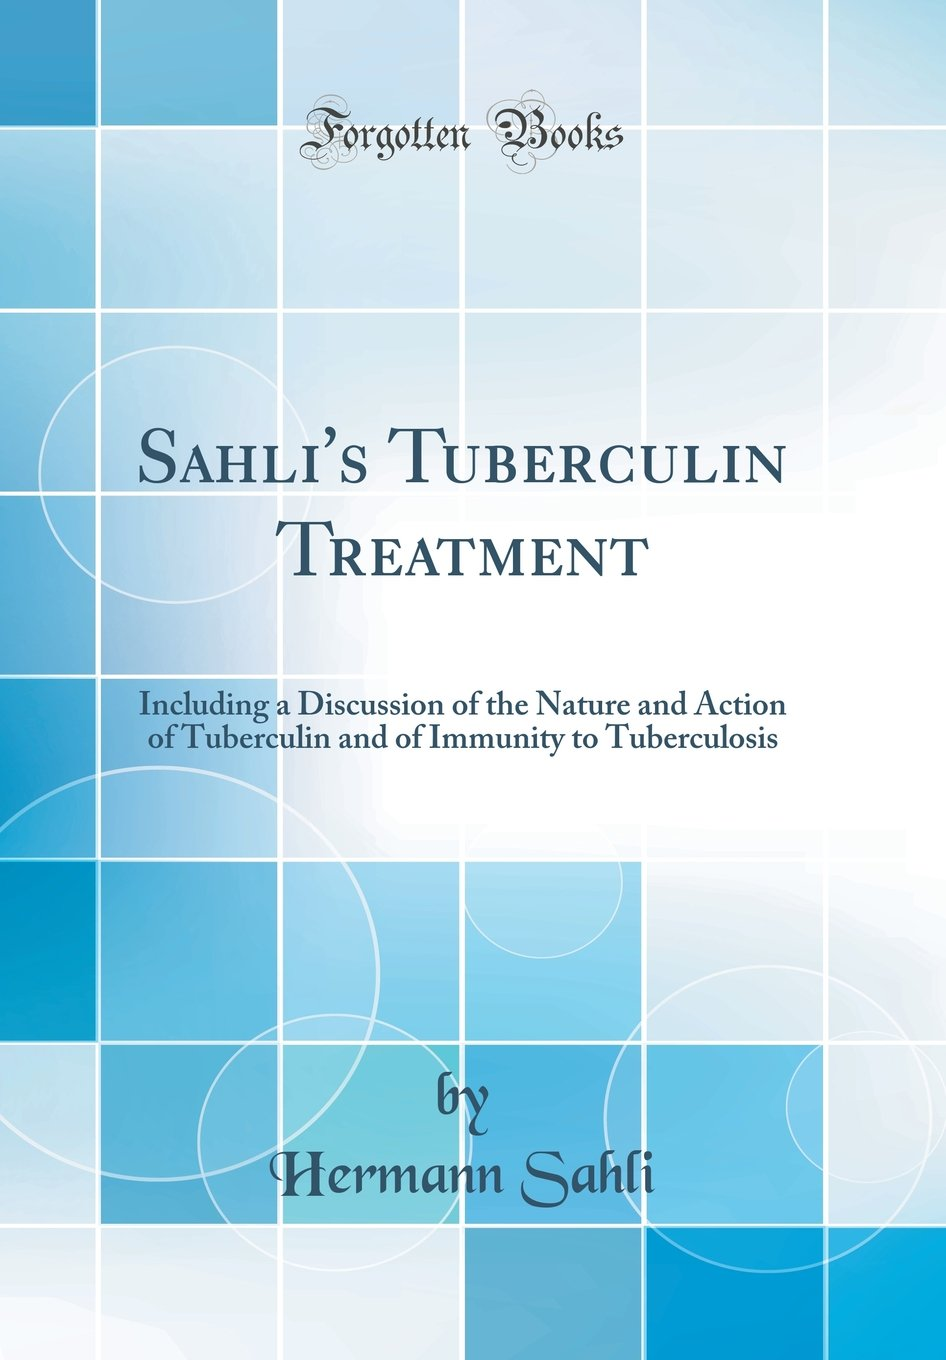 Download Sahli's Tuberculin Treatment: Including a Discussion of the Nature and Action of Tuberculin and of Immunity to Tuberculosis (Classic Reprint) PDF